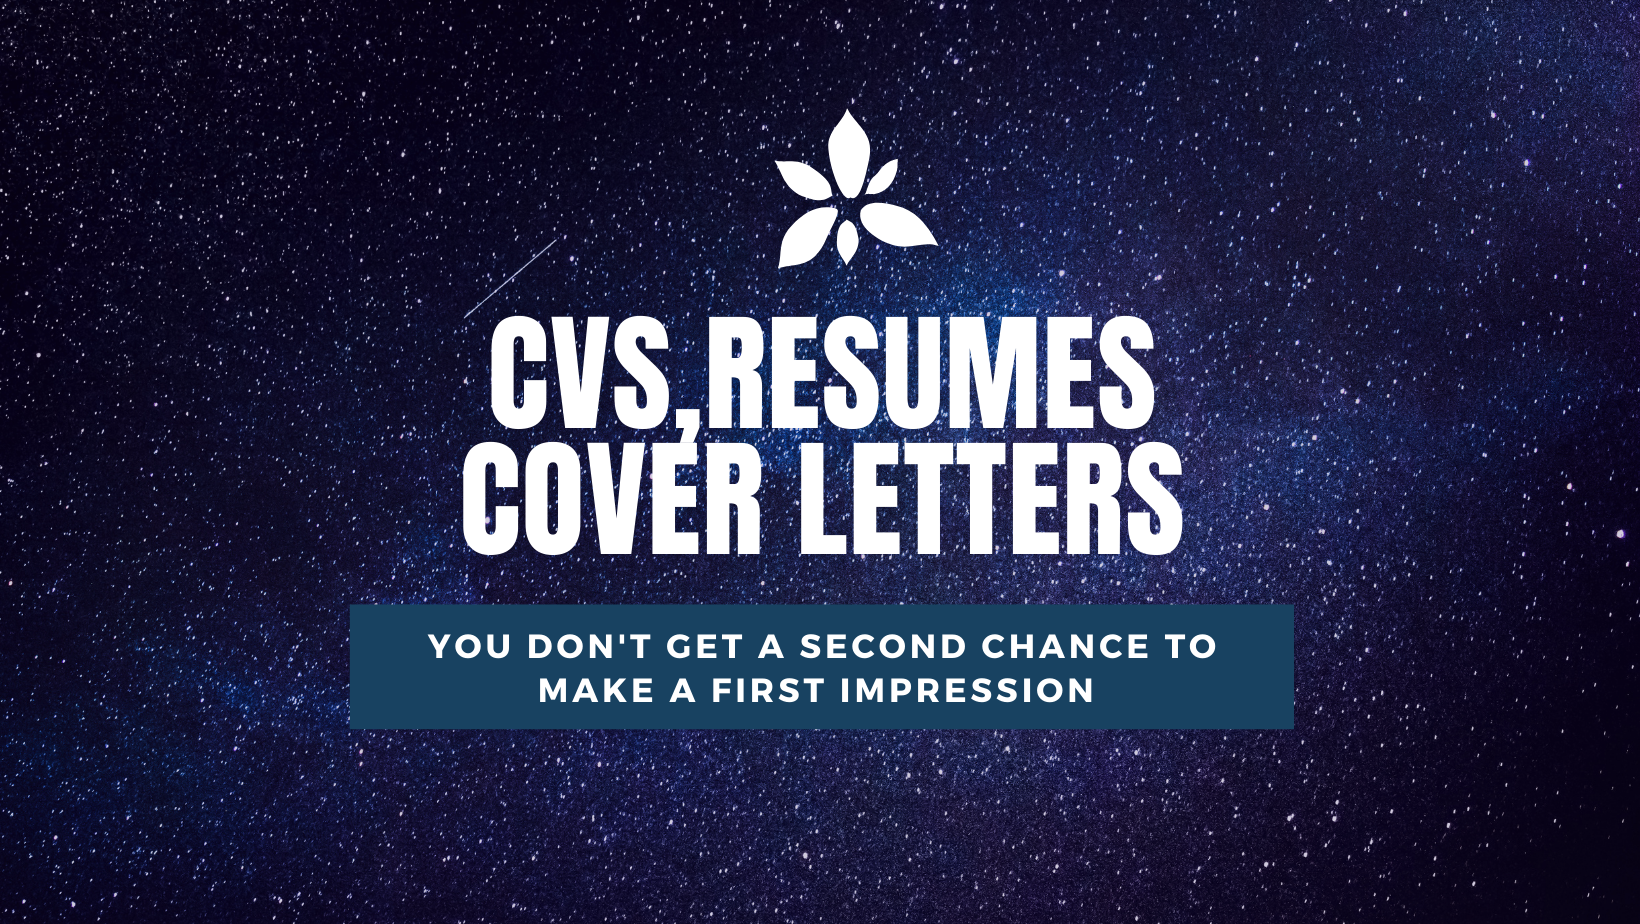 I will deliver a 6 hour professional resume writing service